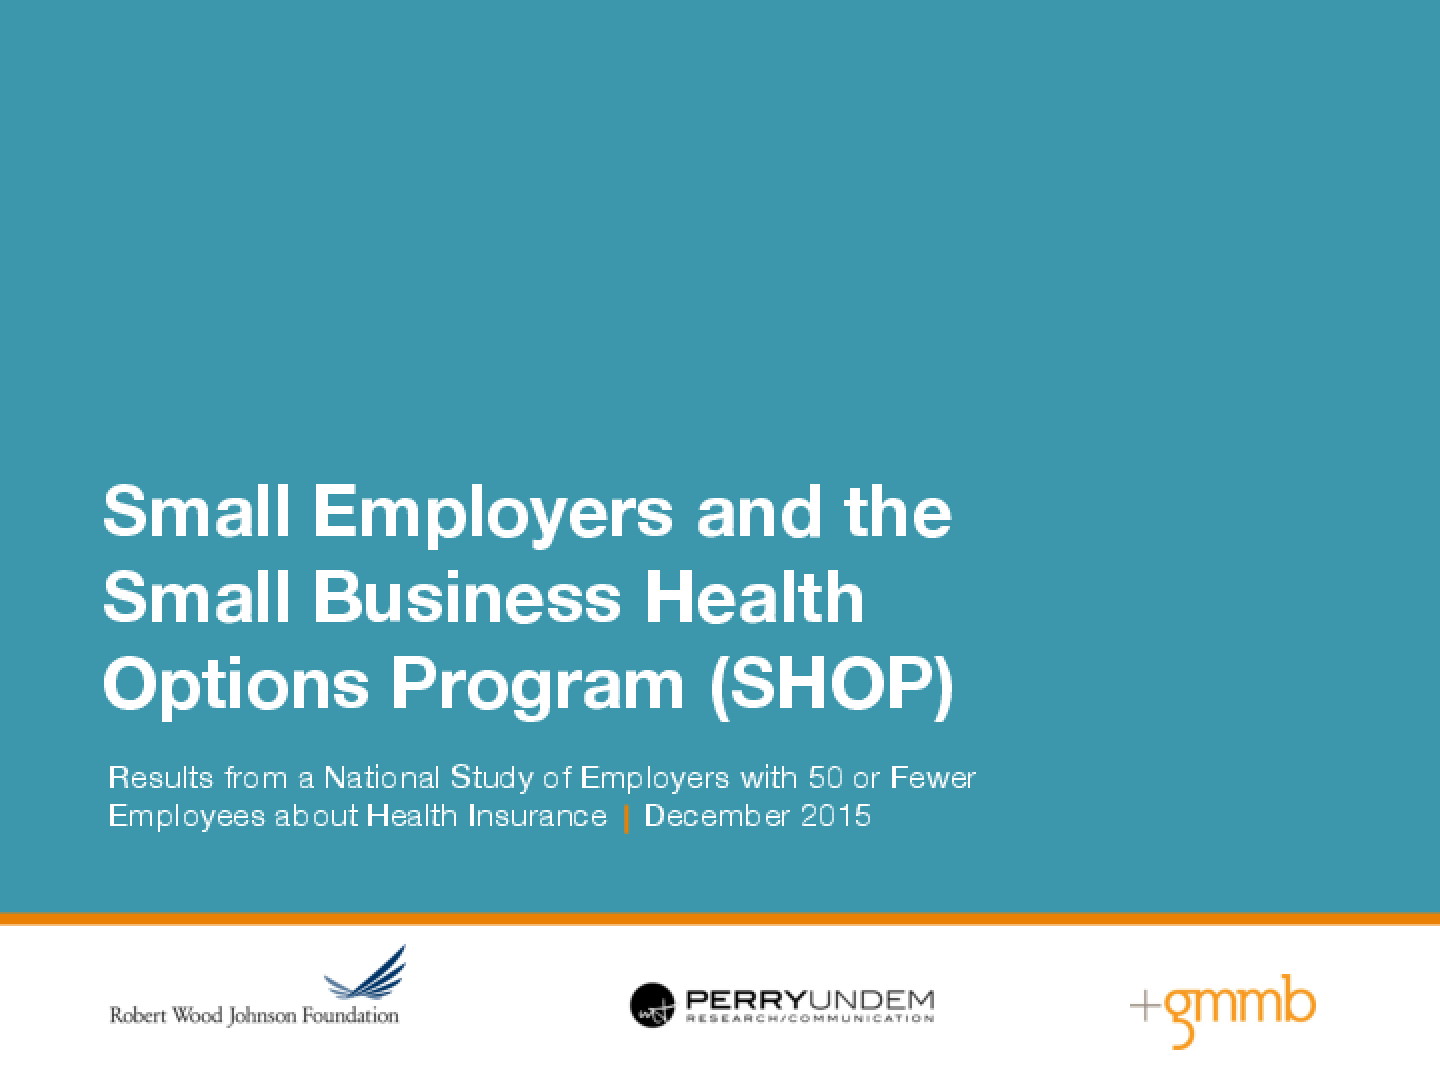 Small Employers and the Small Business Health Options Program (SHOP): Results from a National Study of Employers with 50 or Fewer Employees about Health Insurance